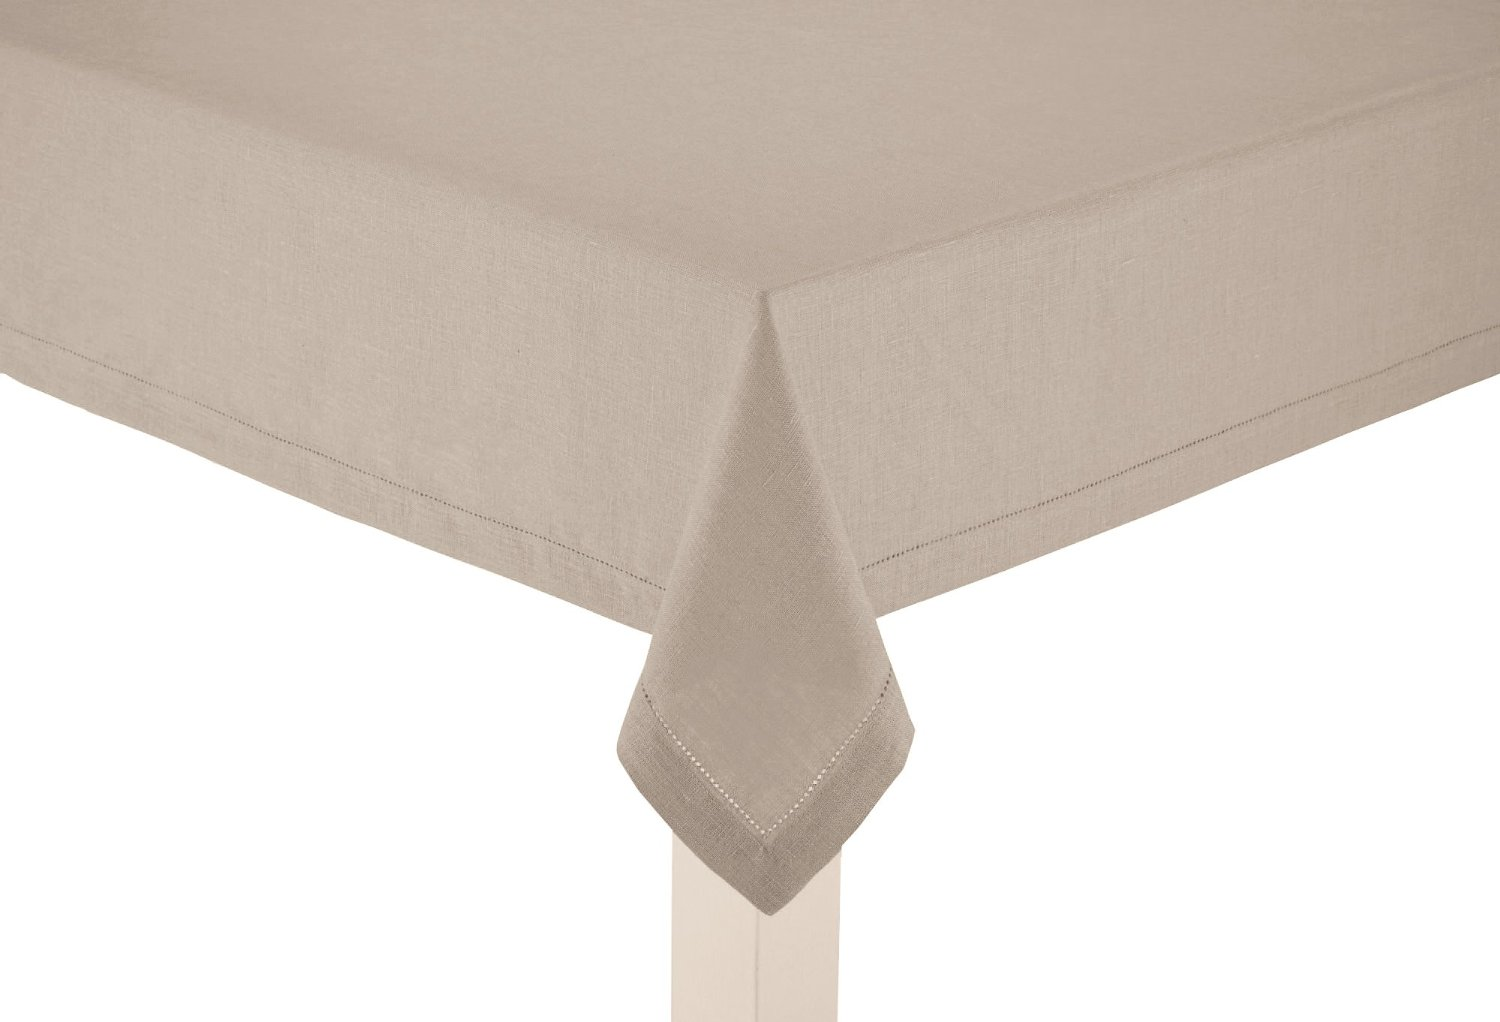 100% Linen Hemstitch Table Cloth - Size 60x120 Natural - Hand Crafted and Hand Stitched Napkins with Hemstitch detailing. The pure Linen fabric works well in both casual and formal settings